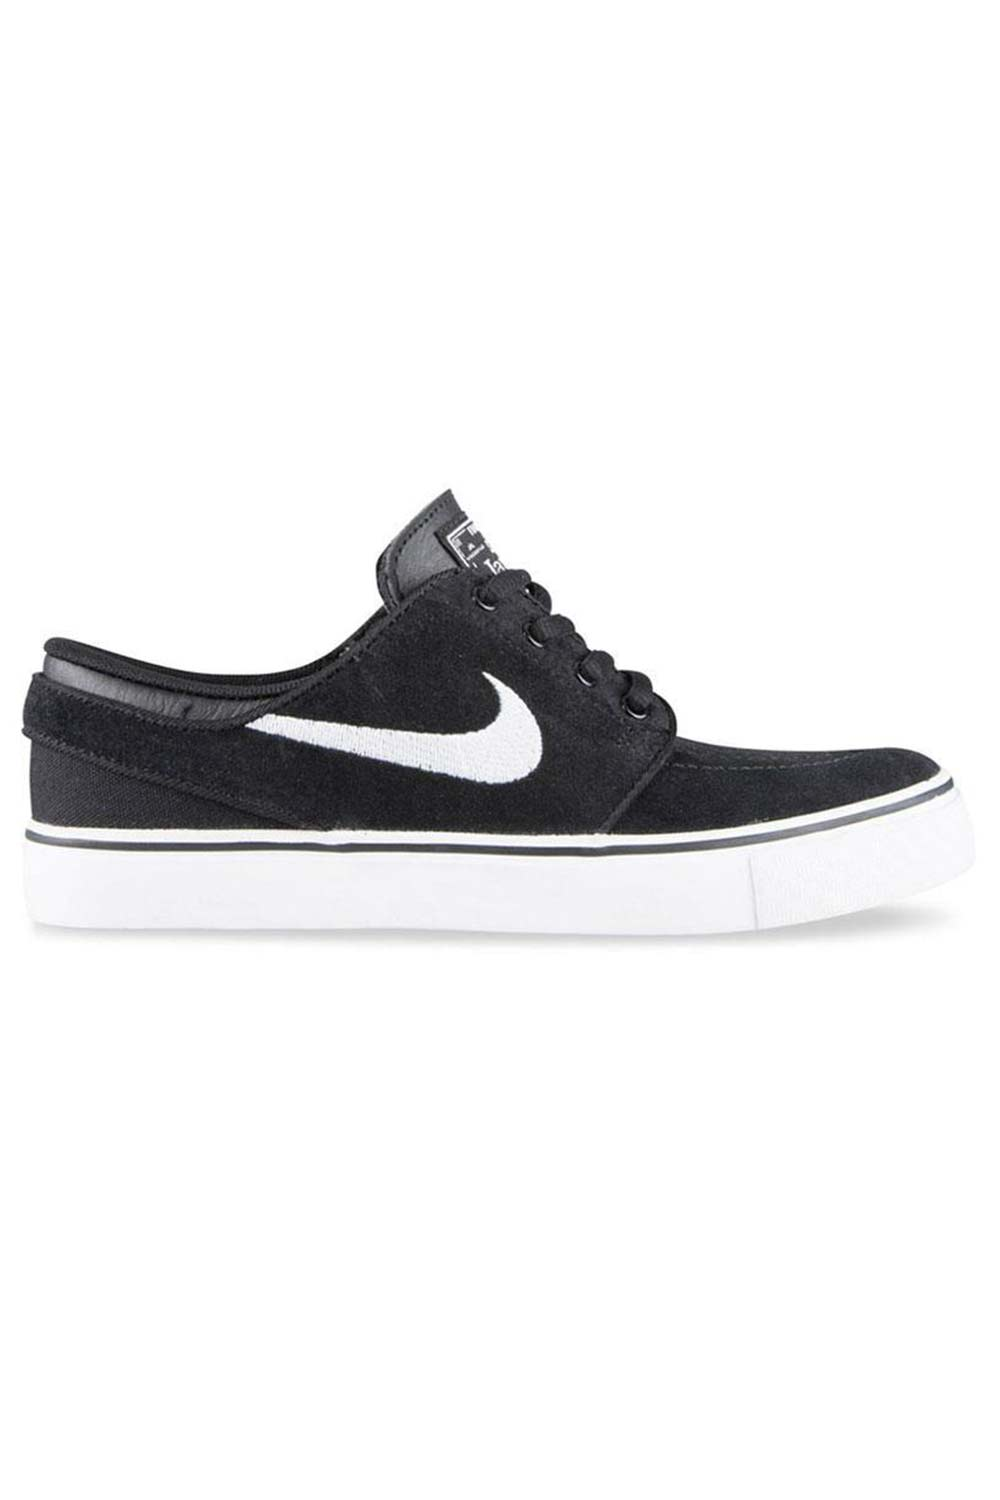 Nike SB Stefan Janoski Youth Shoes - Black/White